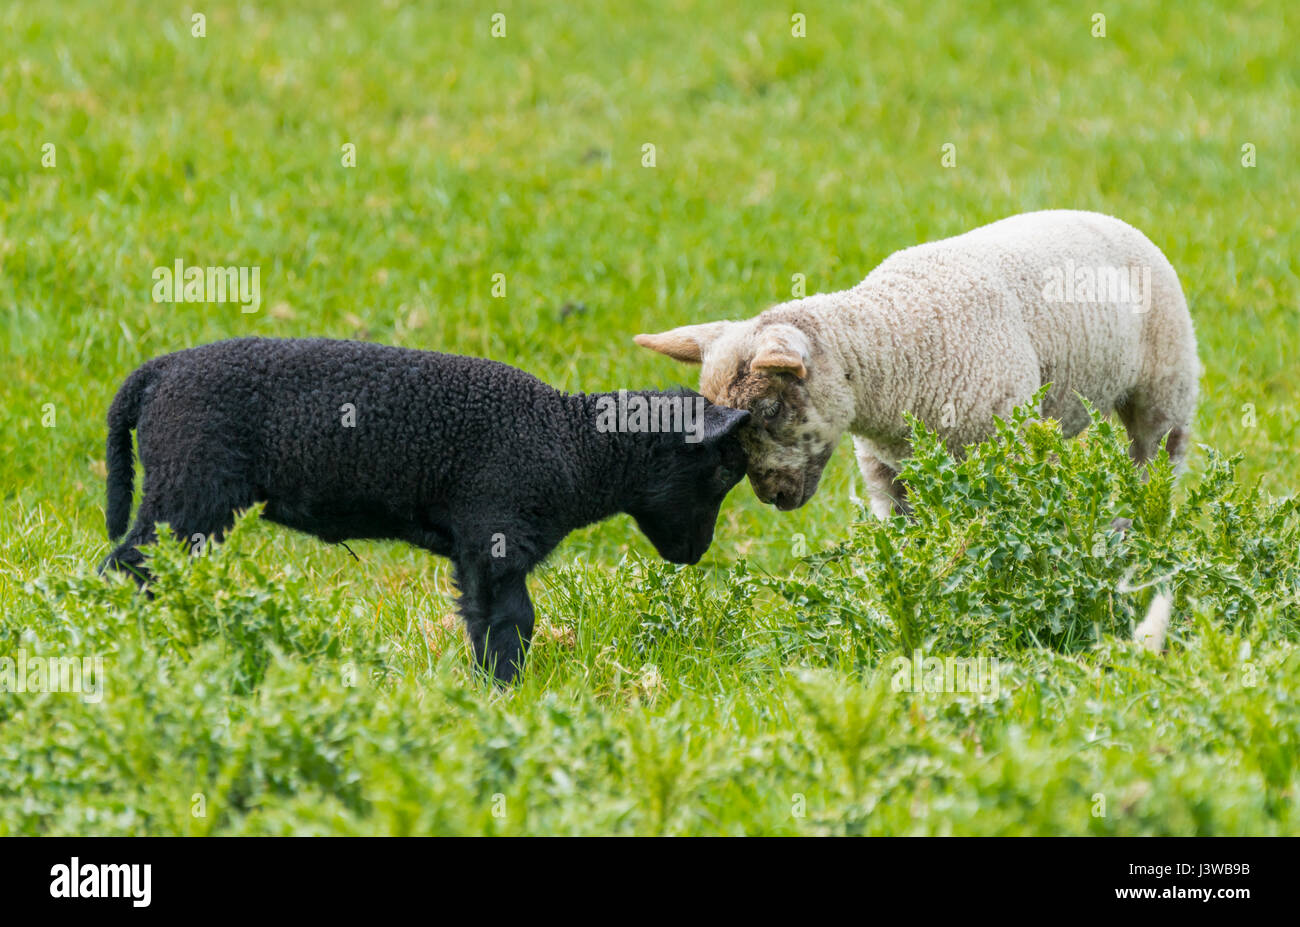 Close friends. Black and white lambs head to head while playing together in a field. Stock Photo